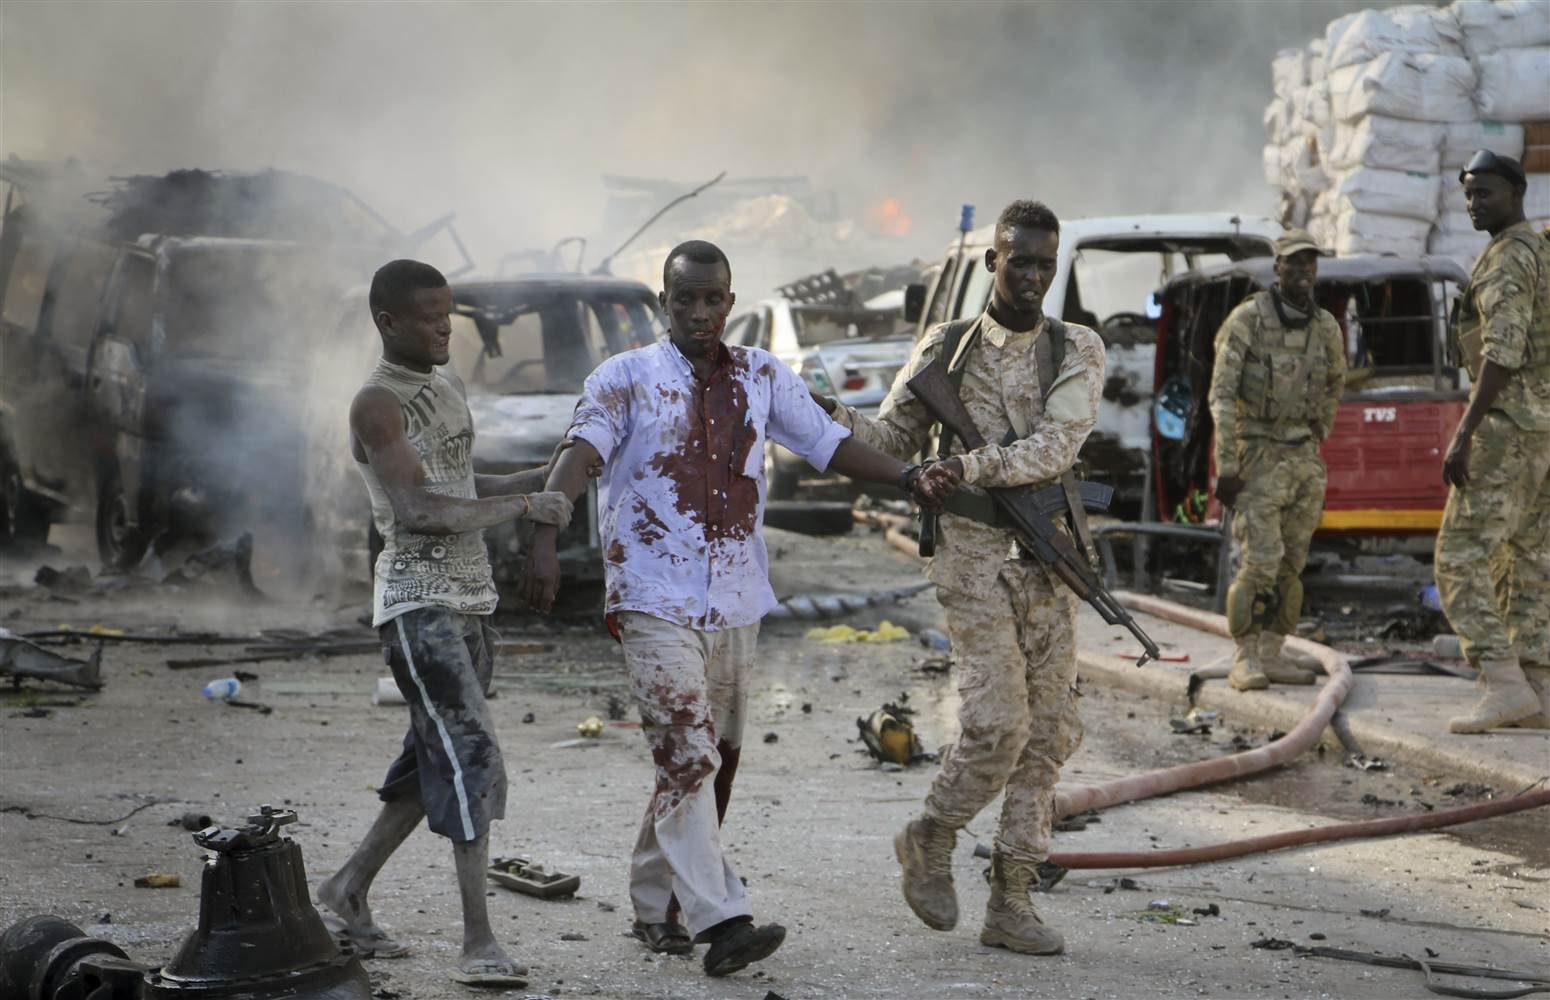 Somali soldiers helps a wounded civilian from the truck blast in Mogadishu, Somalia, Saturday.